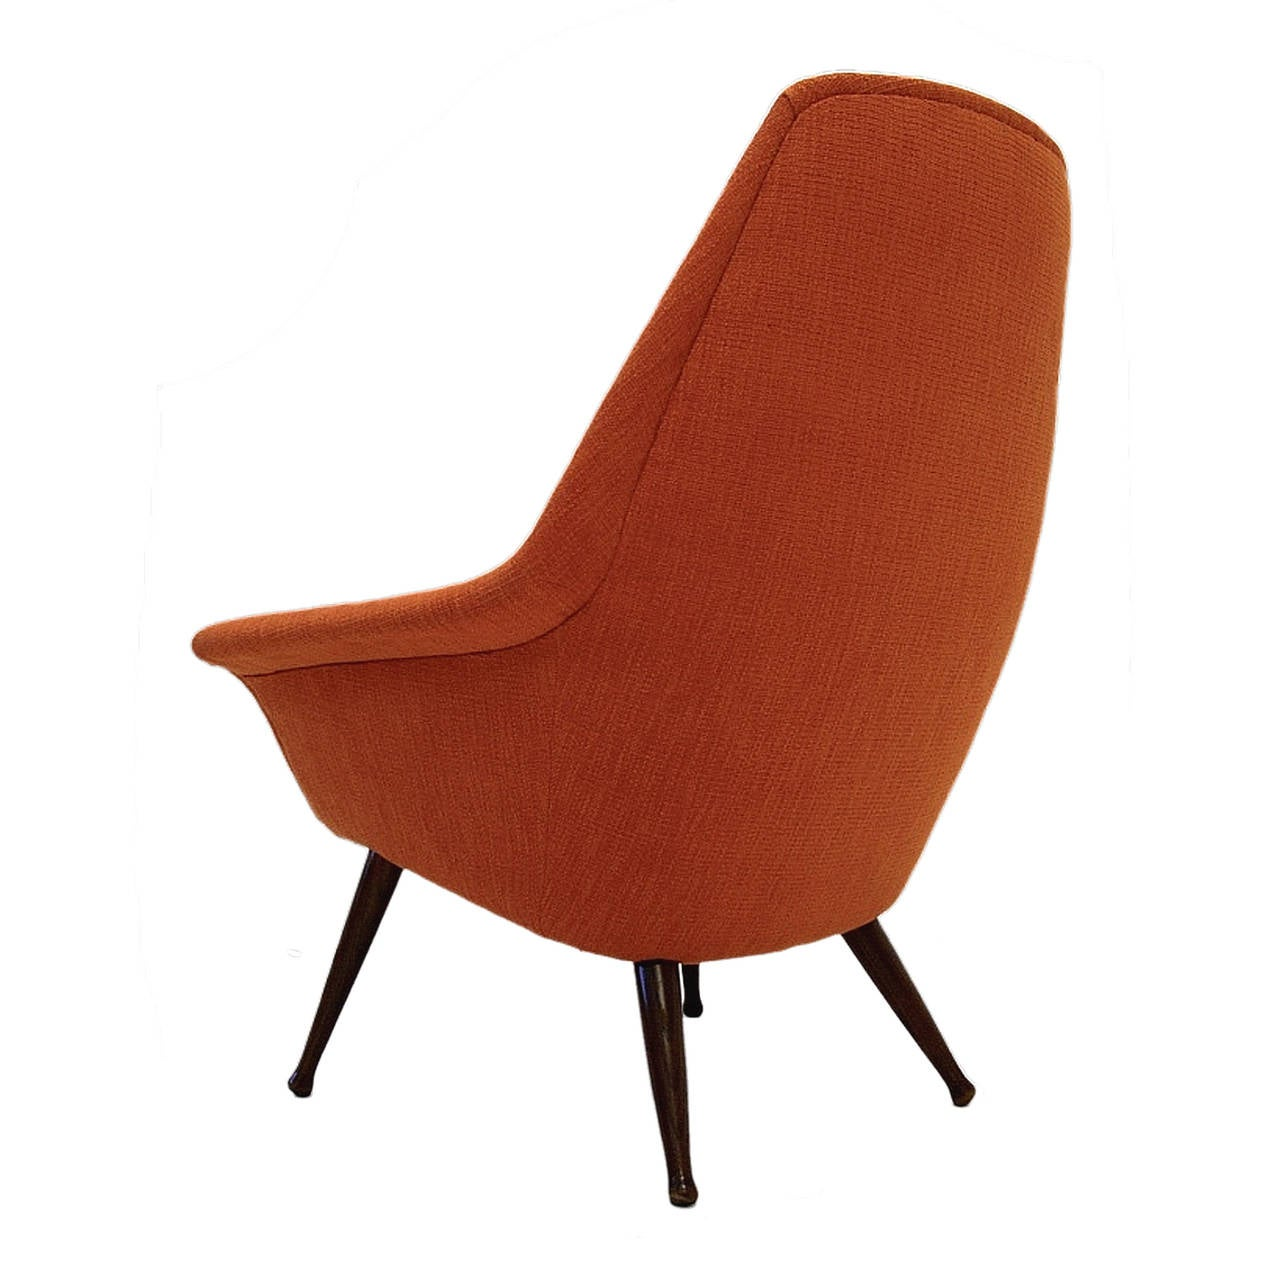 Modern Orange Chair Midcentury Sleek Modern Sculptural Lounge Chair In New